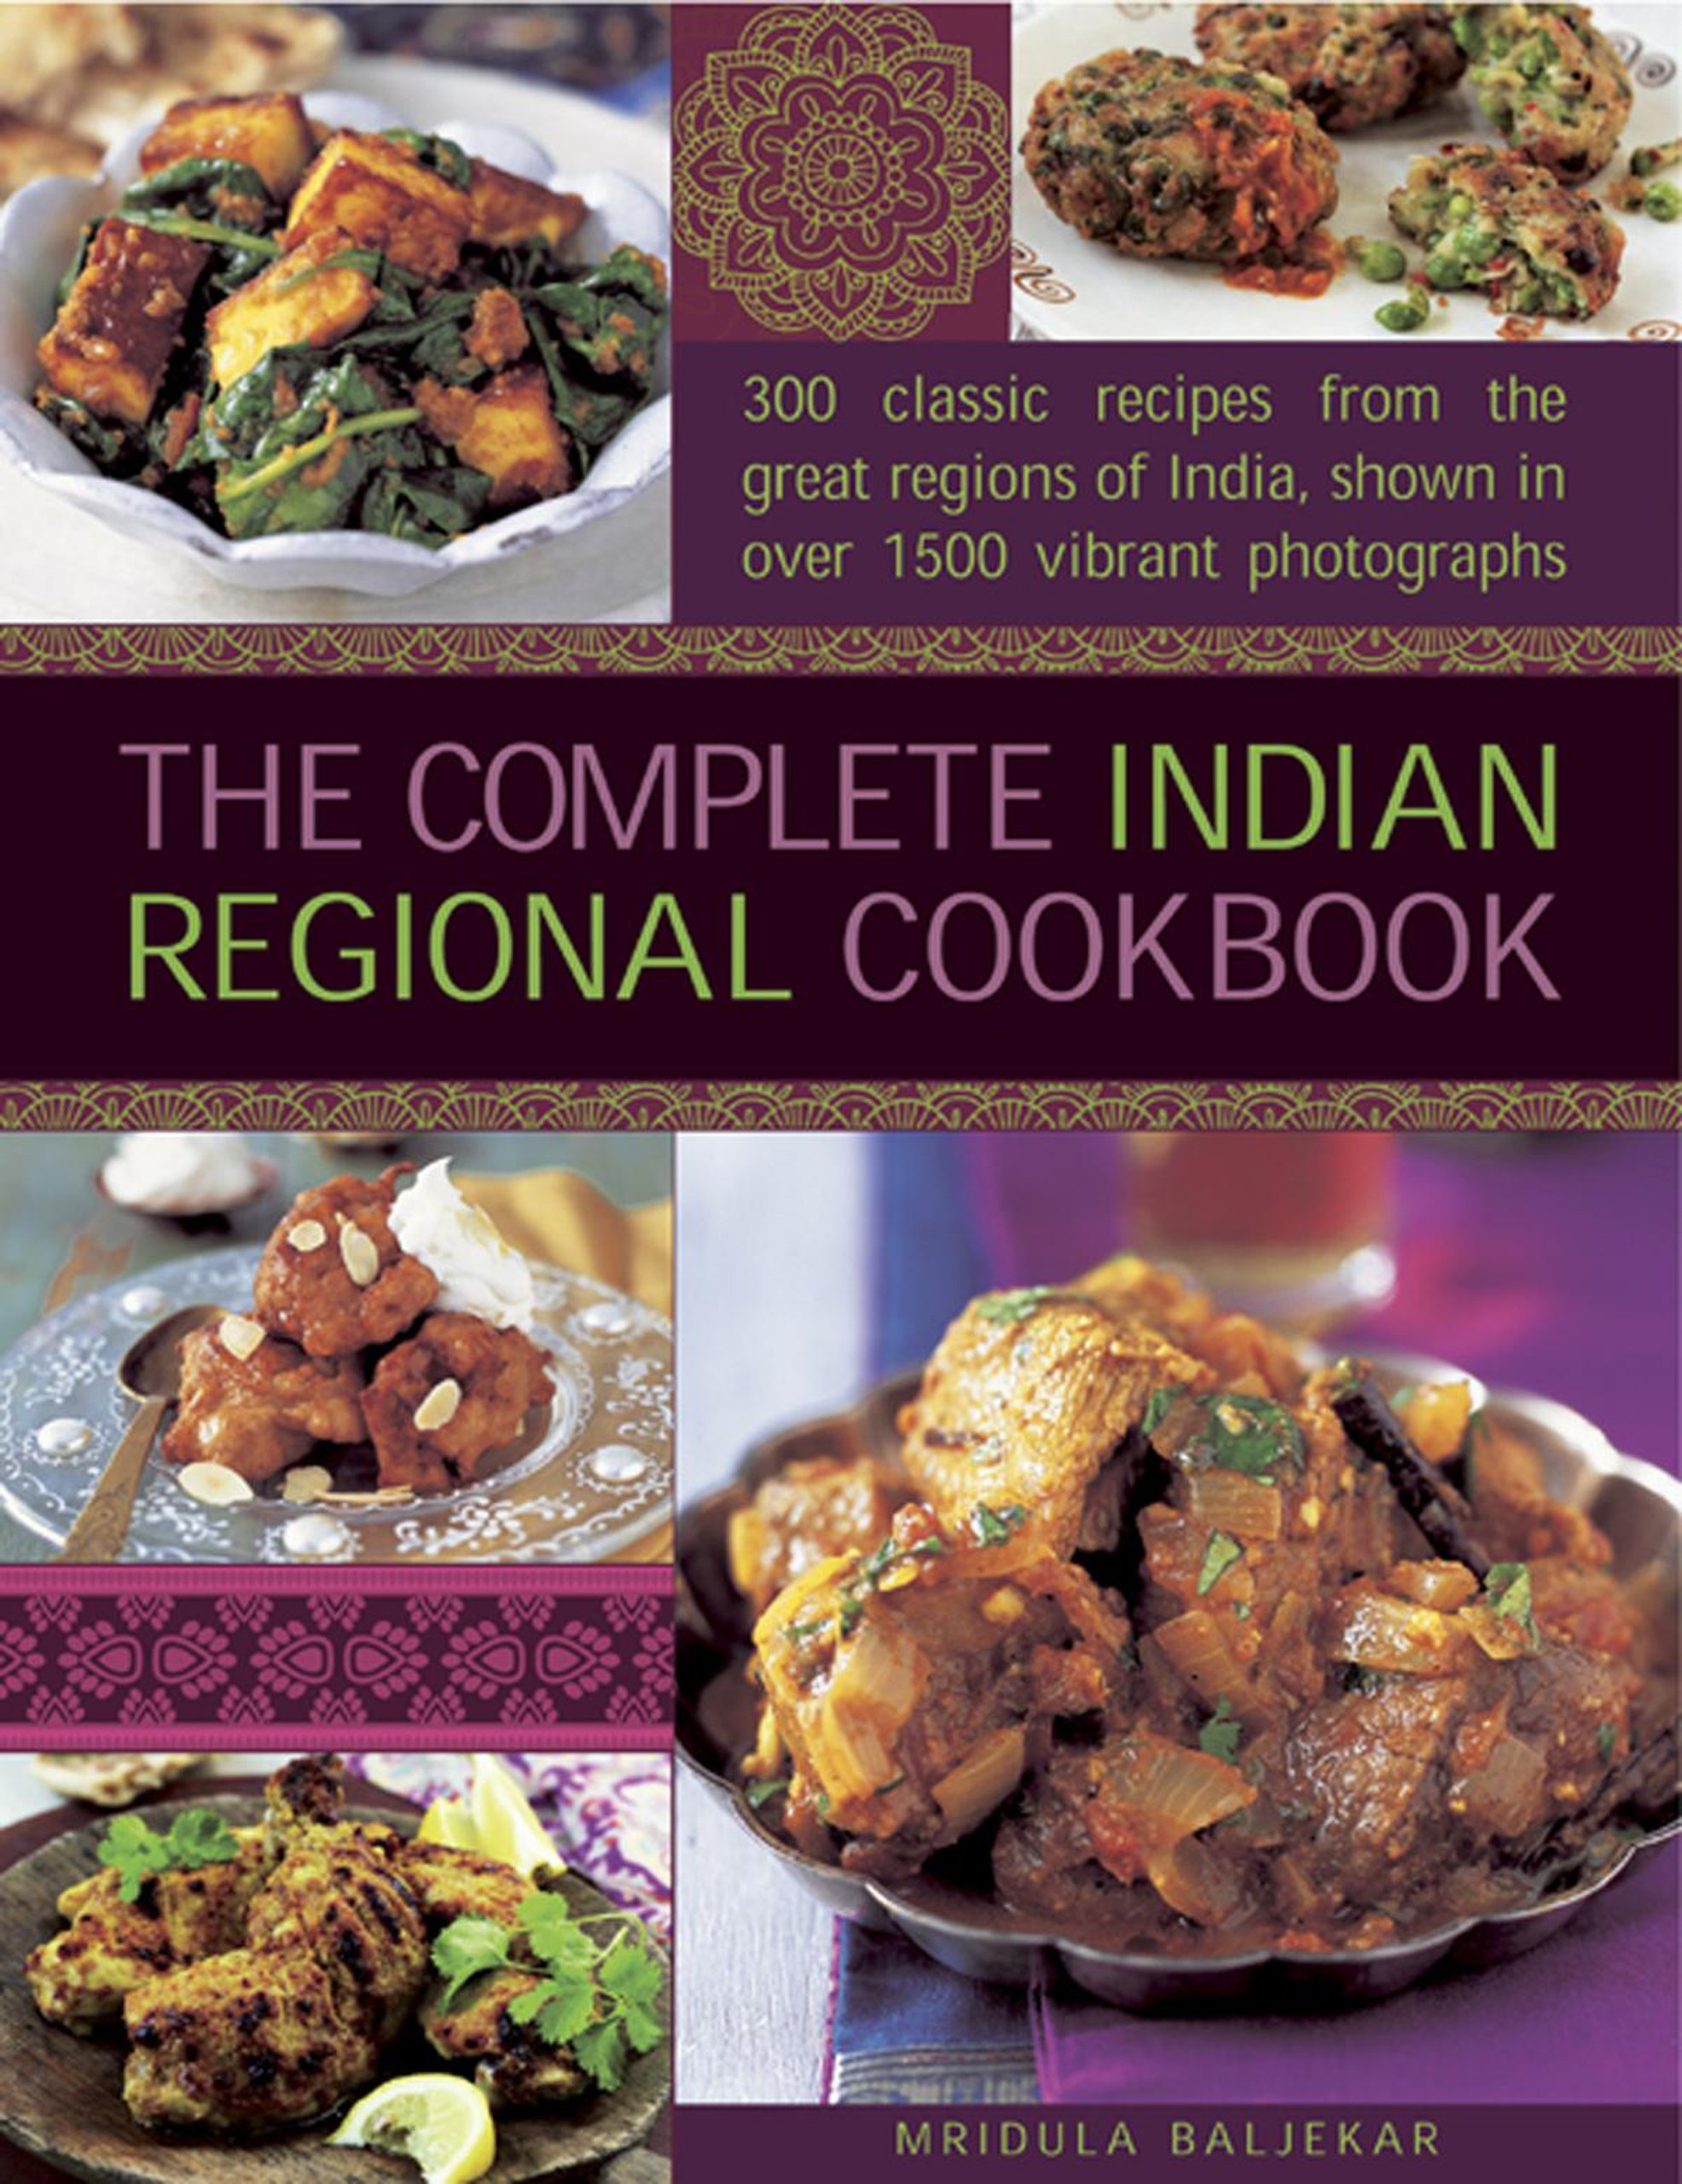 The complete indian regional cookbook 300 classic recipes from the the complete indian regional cookbook 300 classic recipes from the great regions of india shown in over 1500 vibrant photographs mridula baljekar forumfinder Image collections